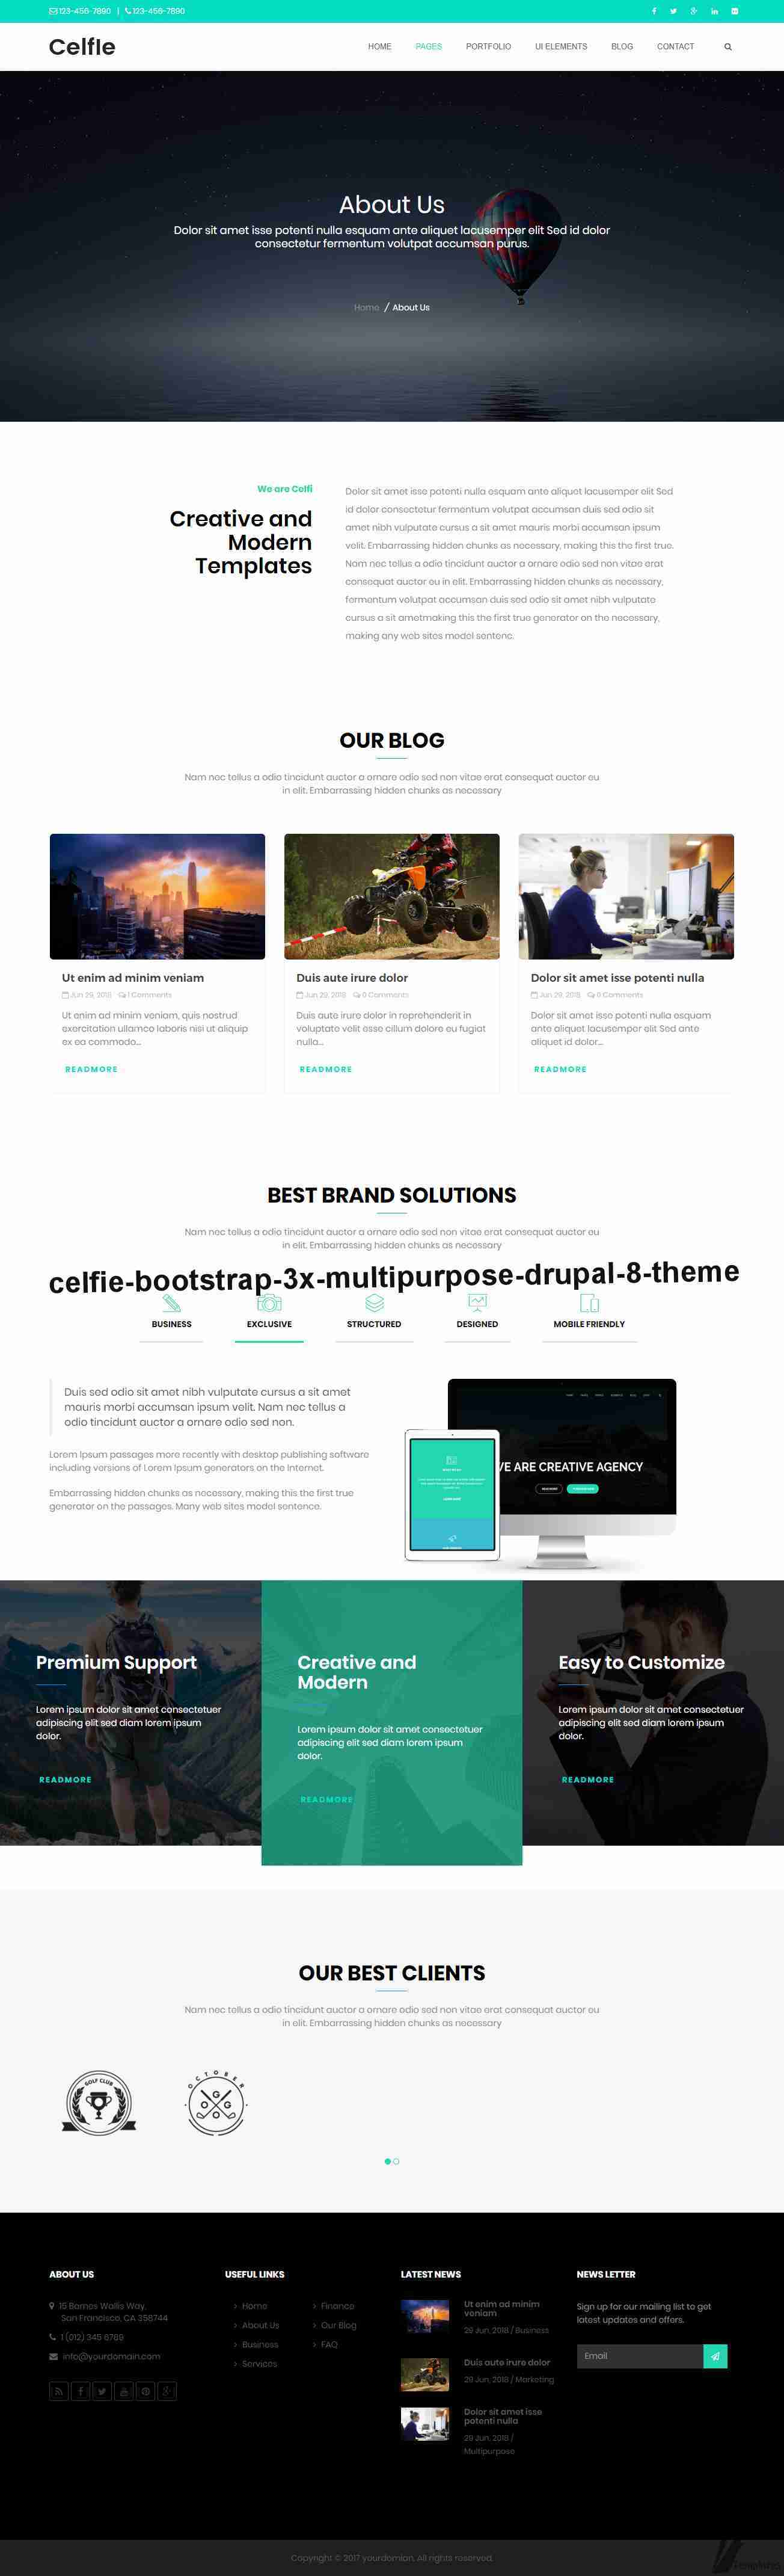 https://images.besthemes.com/images/h1_celfie-bootstrap-3x-multipurpose-drupal-8-theme3-_-251265072/03_about.png